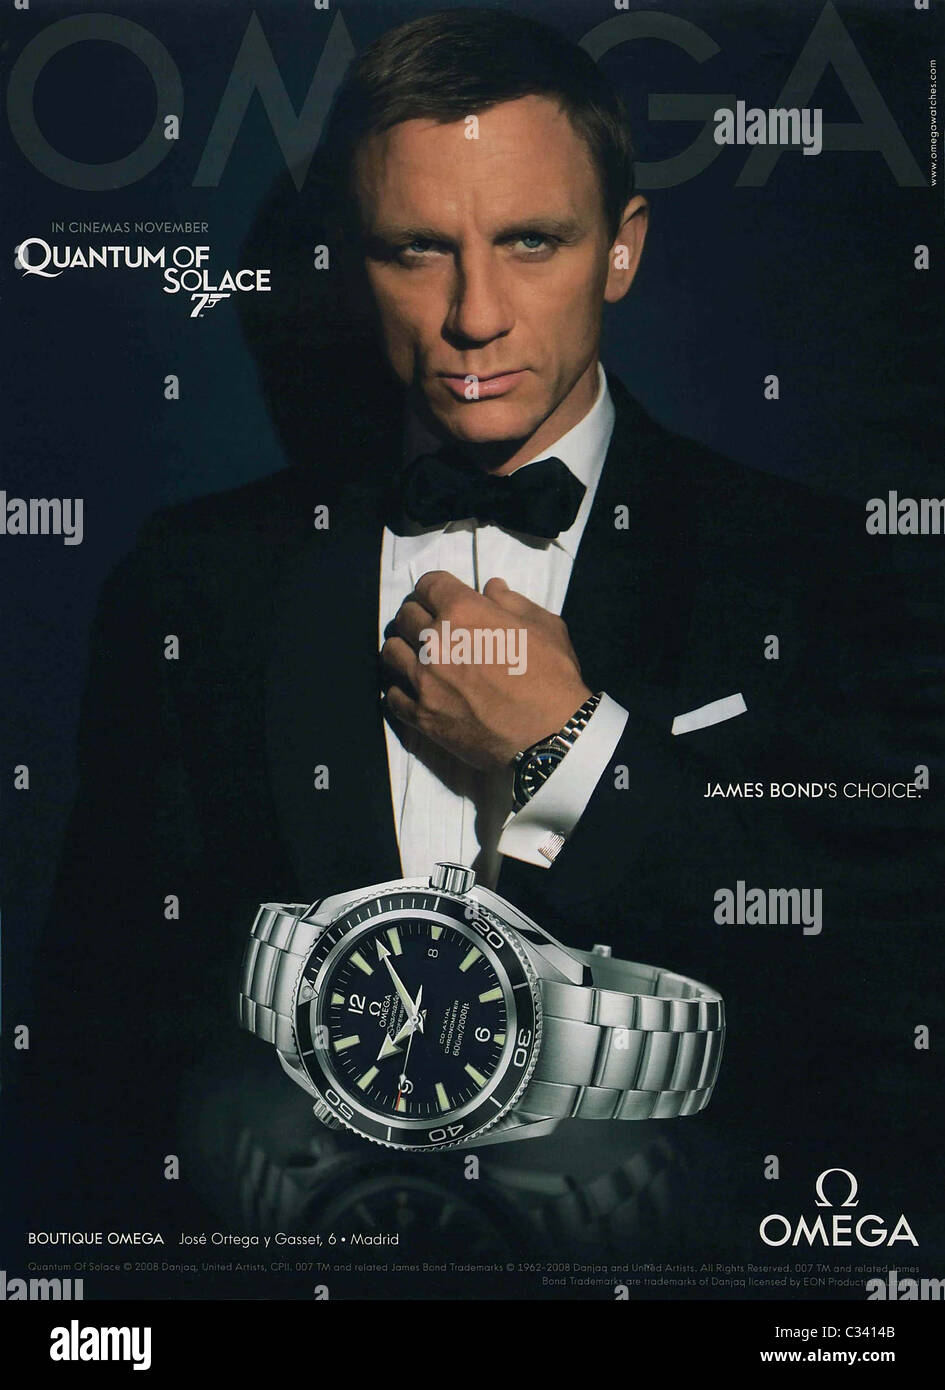 2a0eab9cefb Daniel Craig in an advertising campaign for Omega watches November 2008  This is a PR photo.